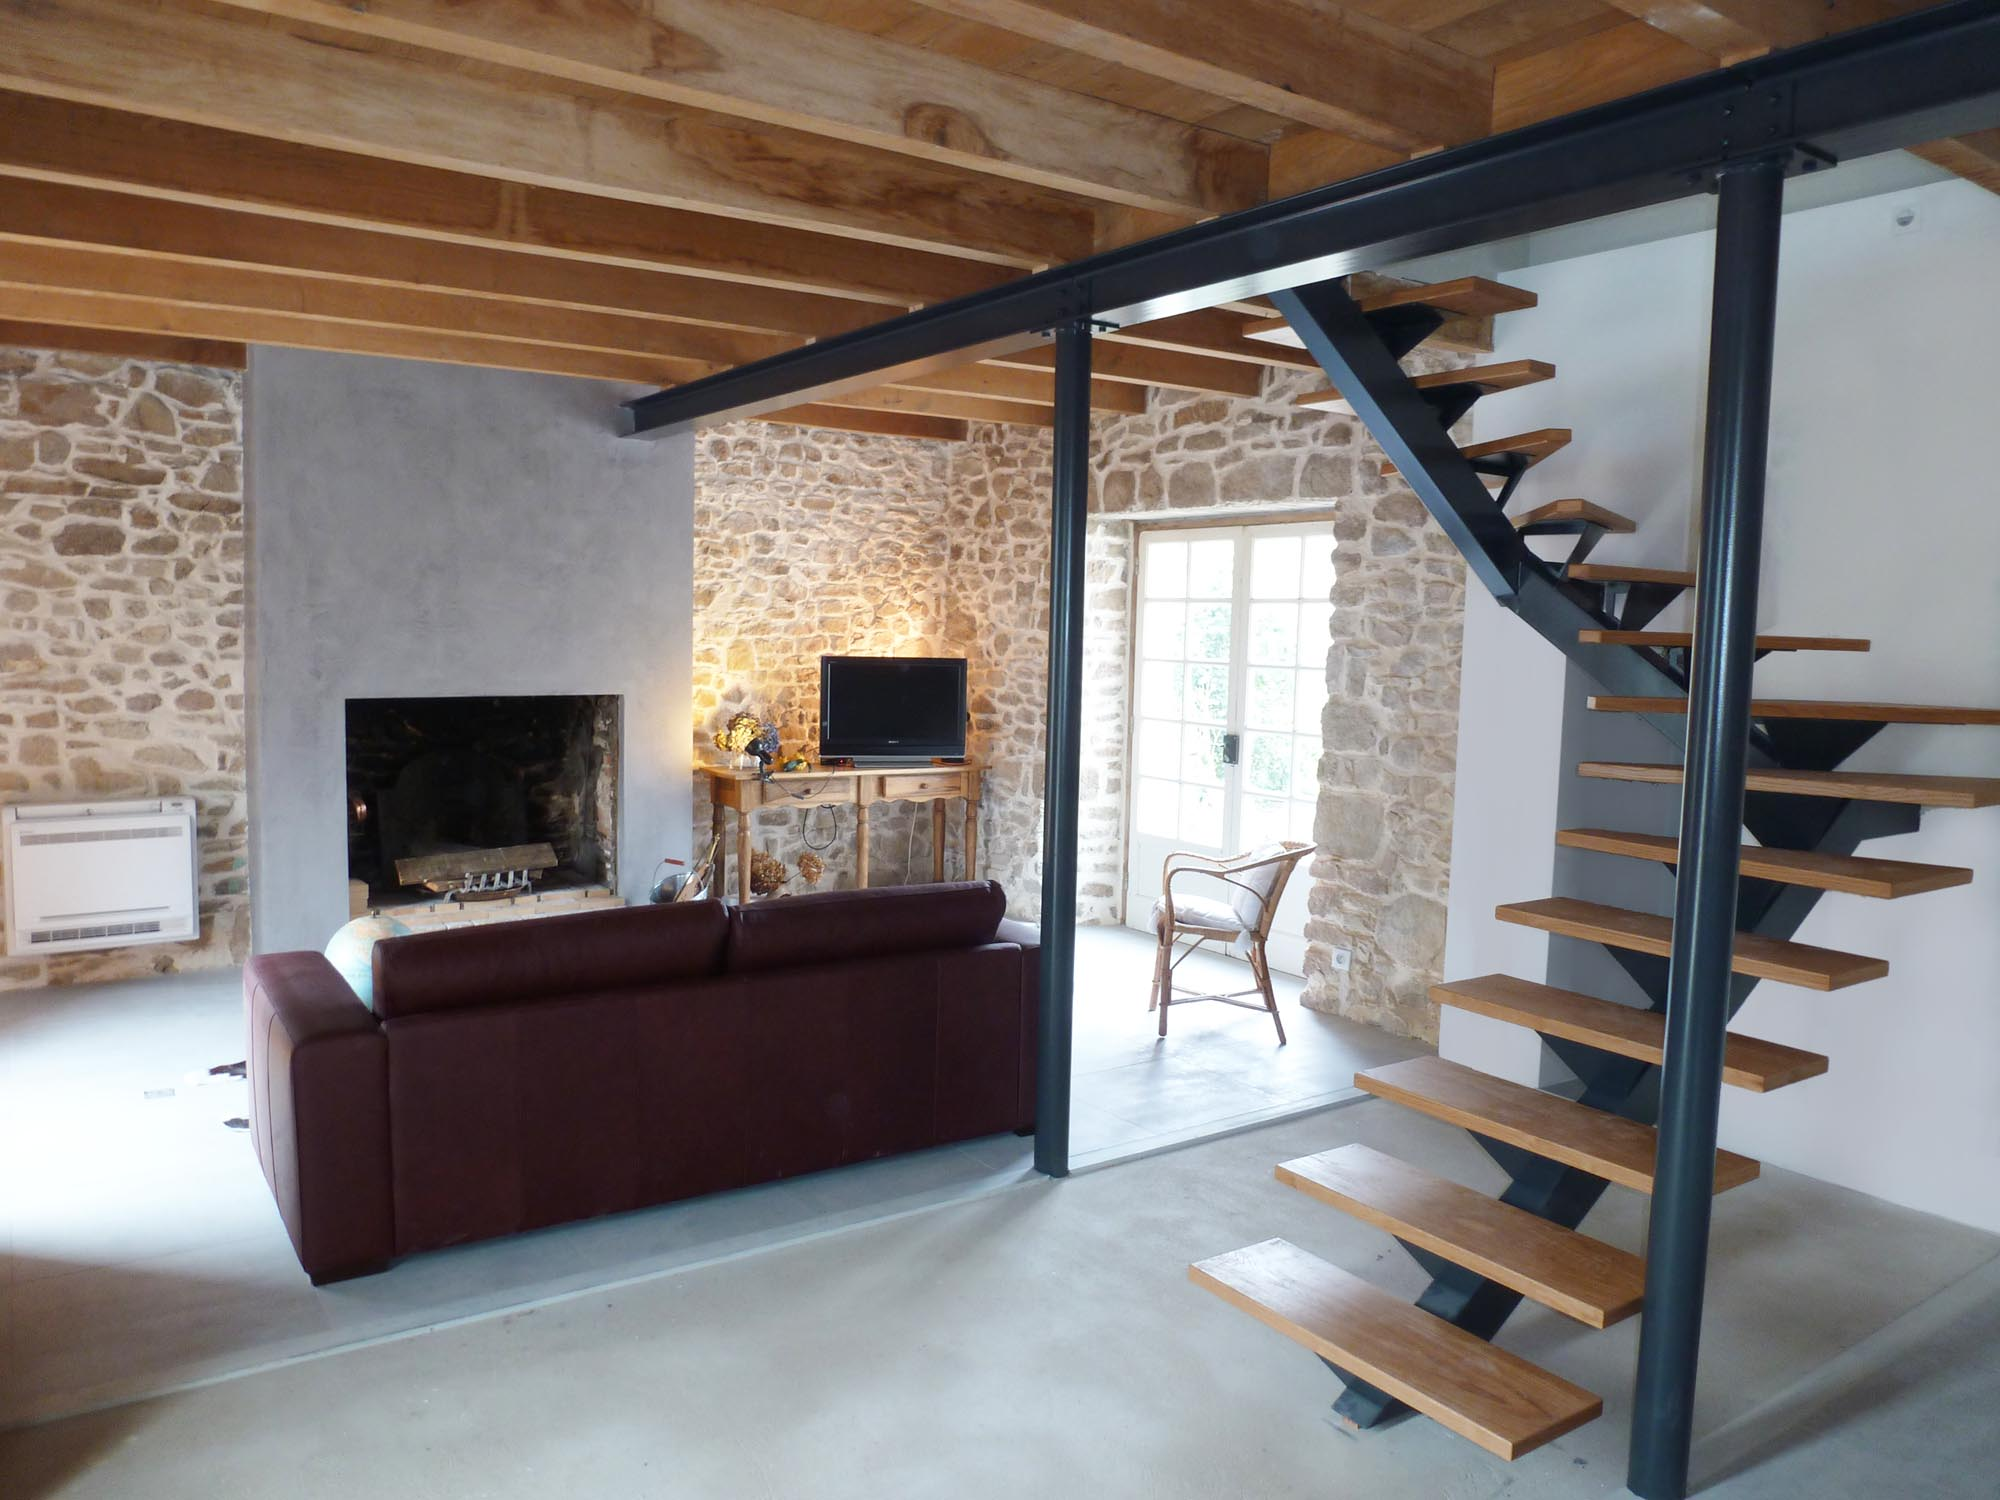 R novation theix par herv couedel muzillac sarzeau - Renovation maison ancienne architecte ...